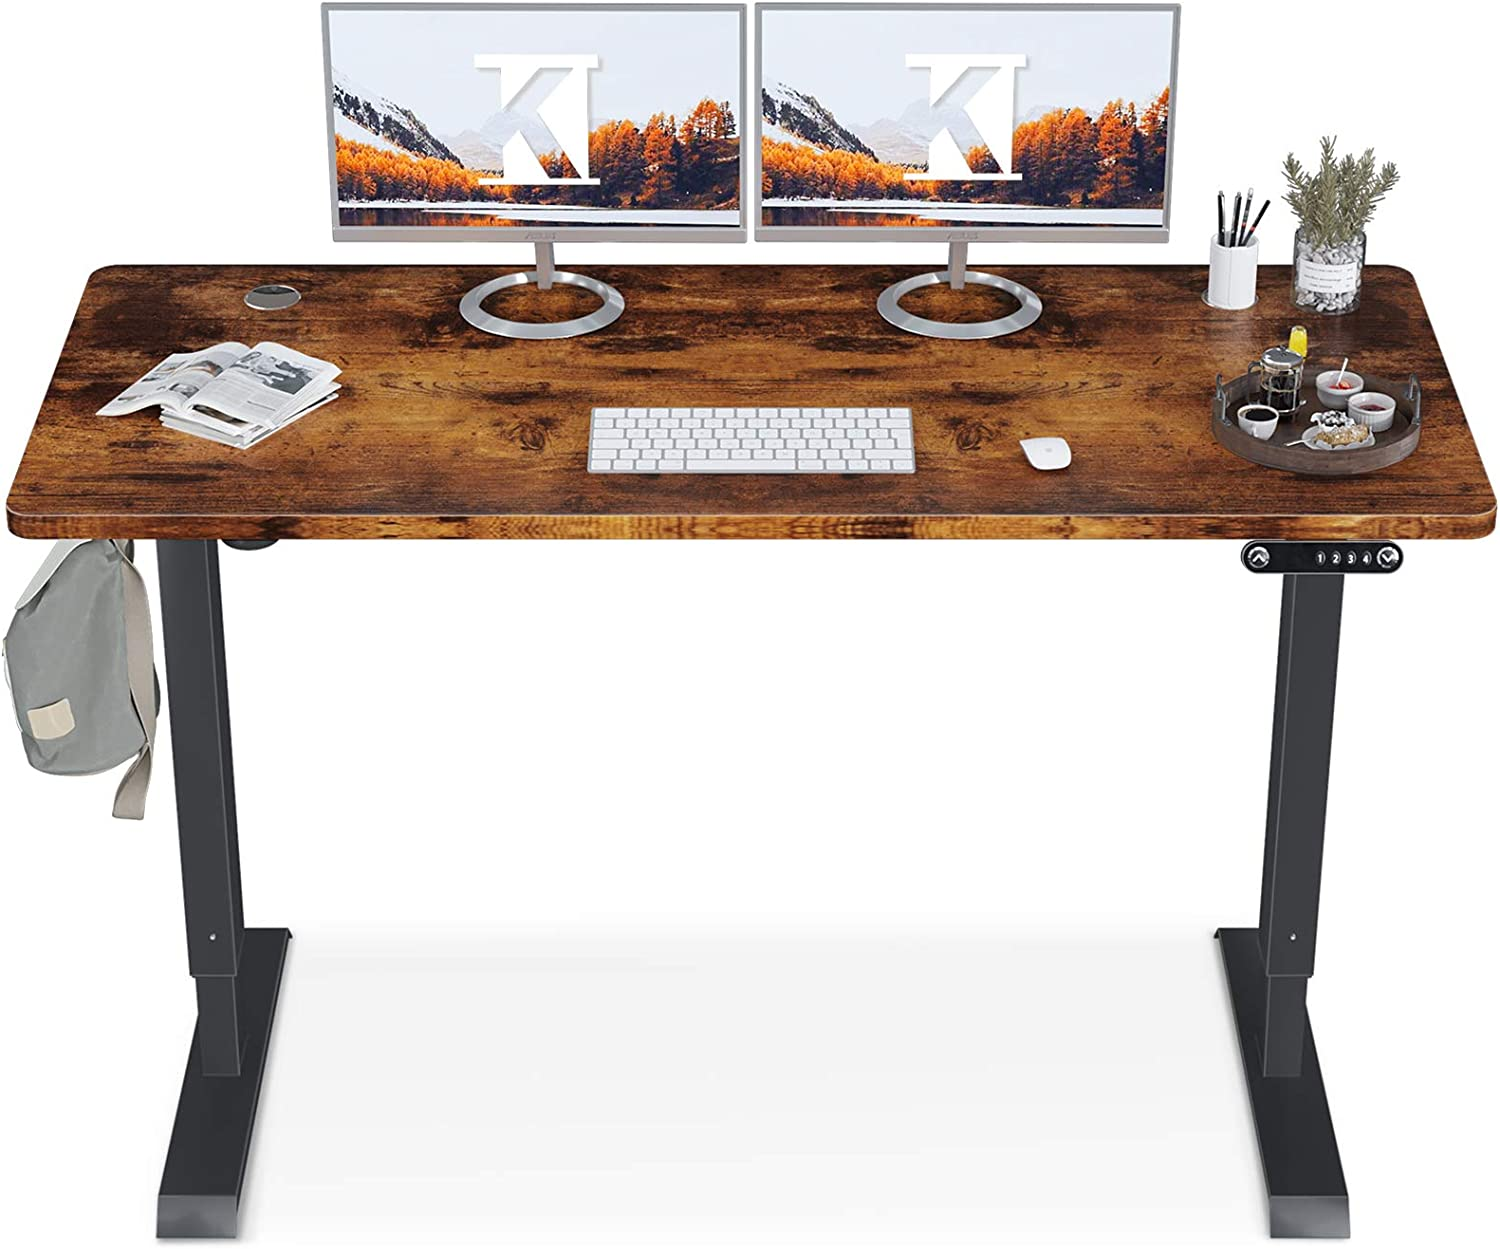 KKL Height Adjustable Electric Standing Desk, 55 x 28 Inches Sit Stand Desk Home Office Table with Splice Board, Rustic Brown